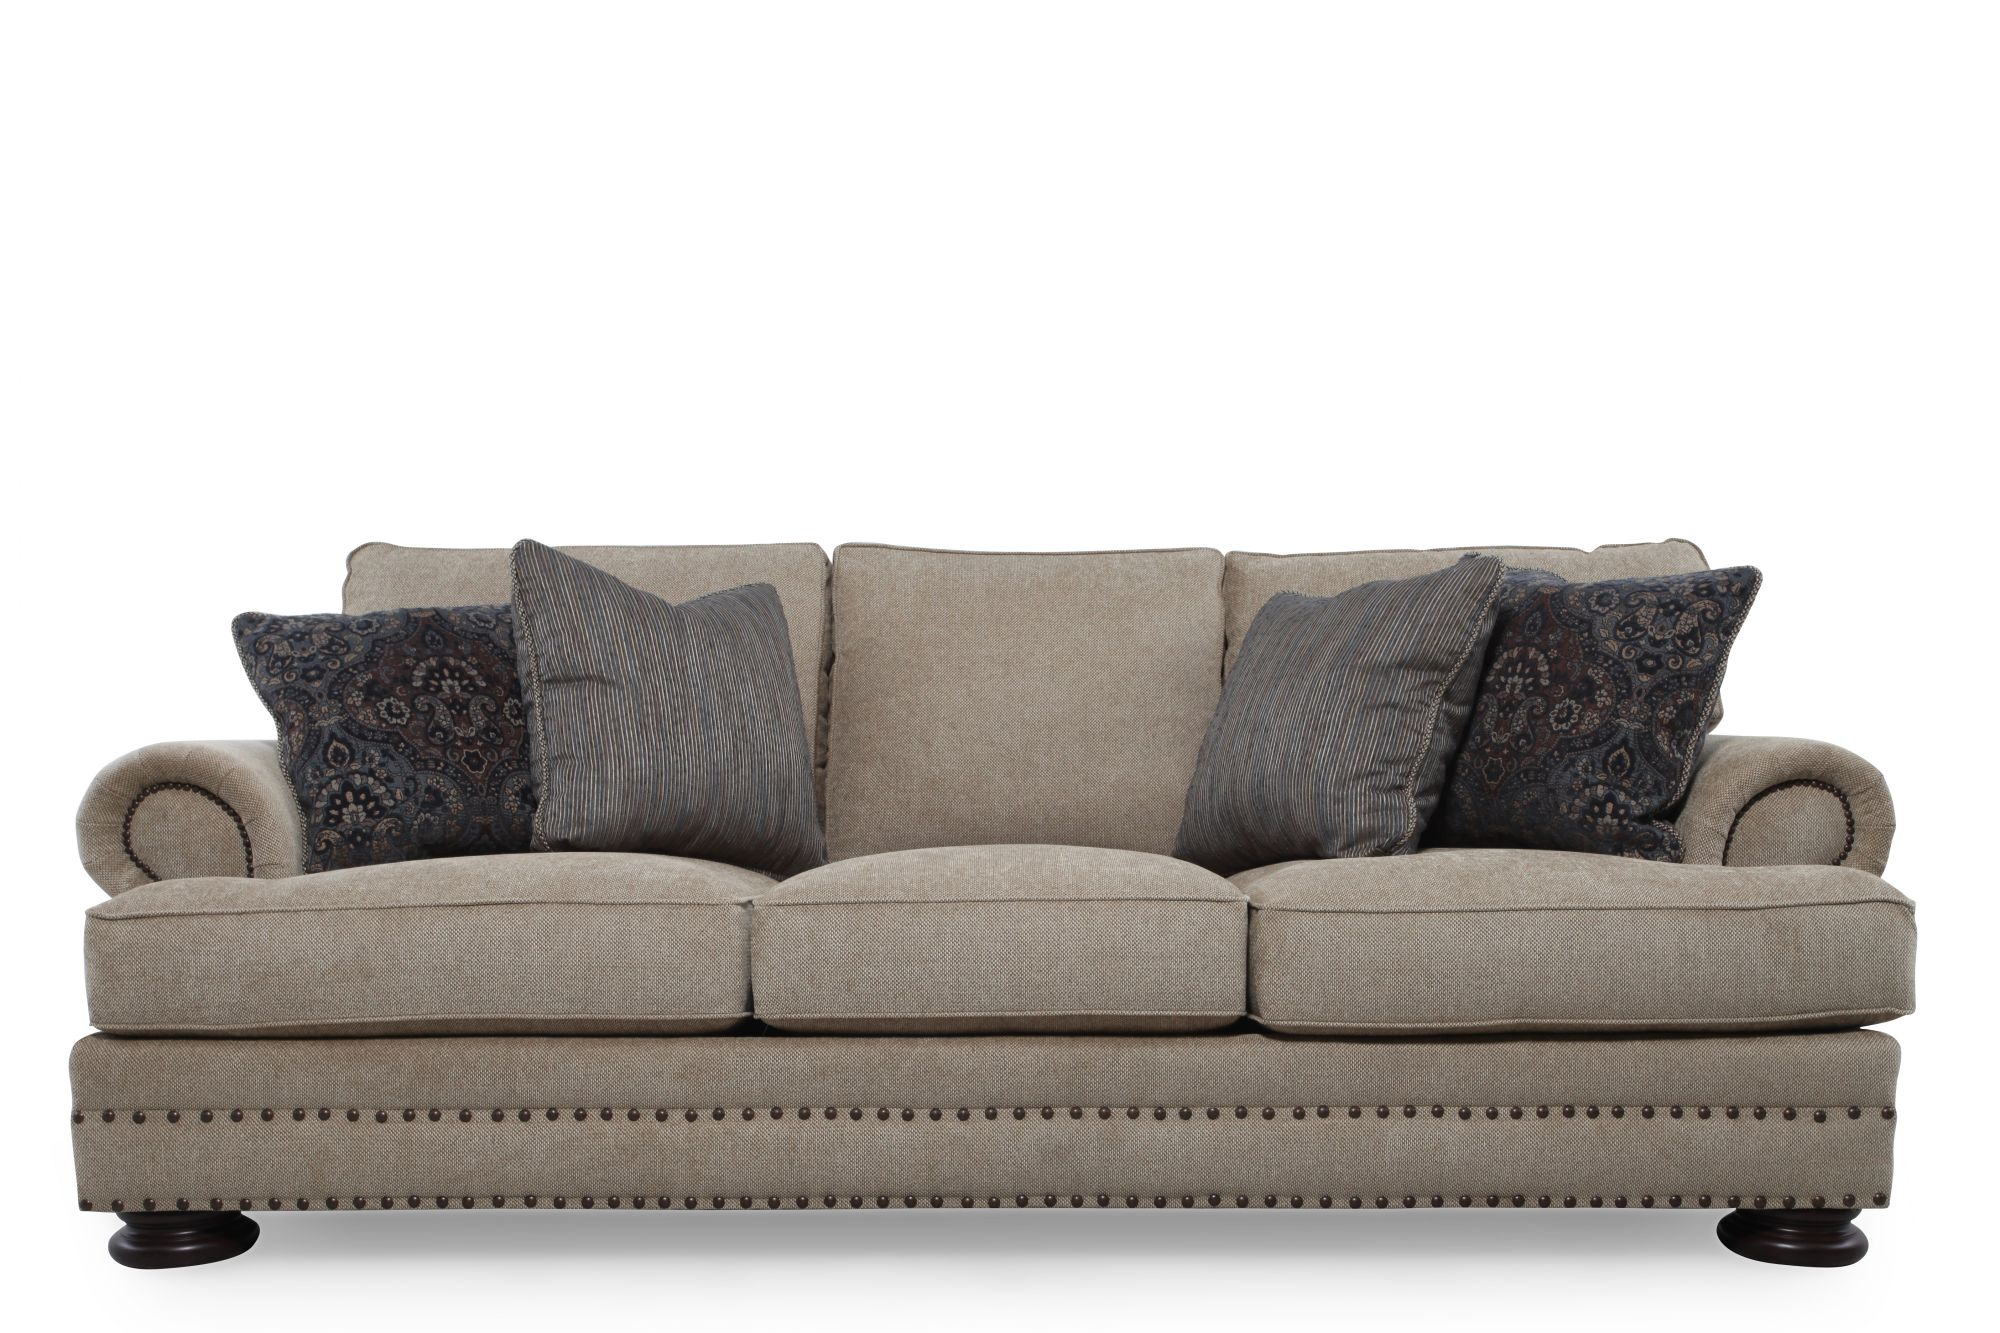 Bernhardt foster sofa mathis brothers furniture for Bernhardt furniture